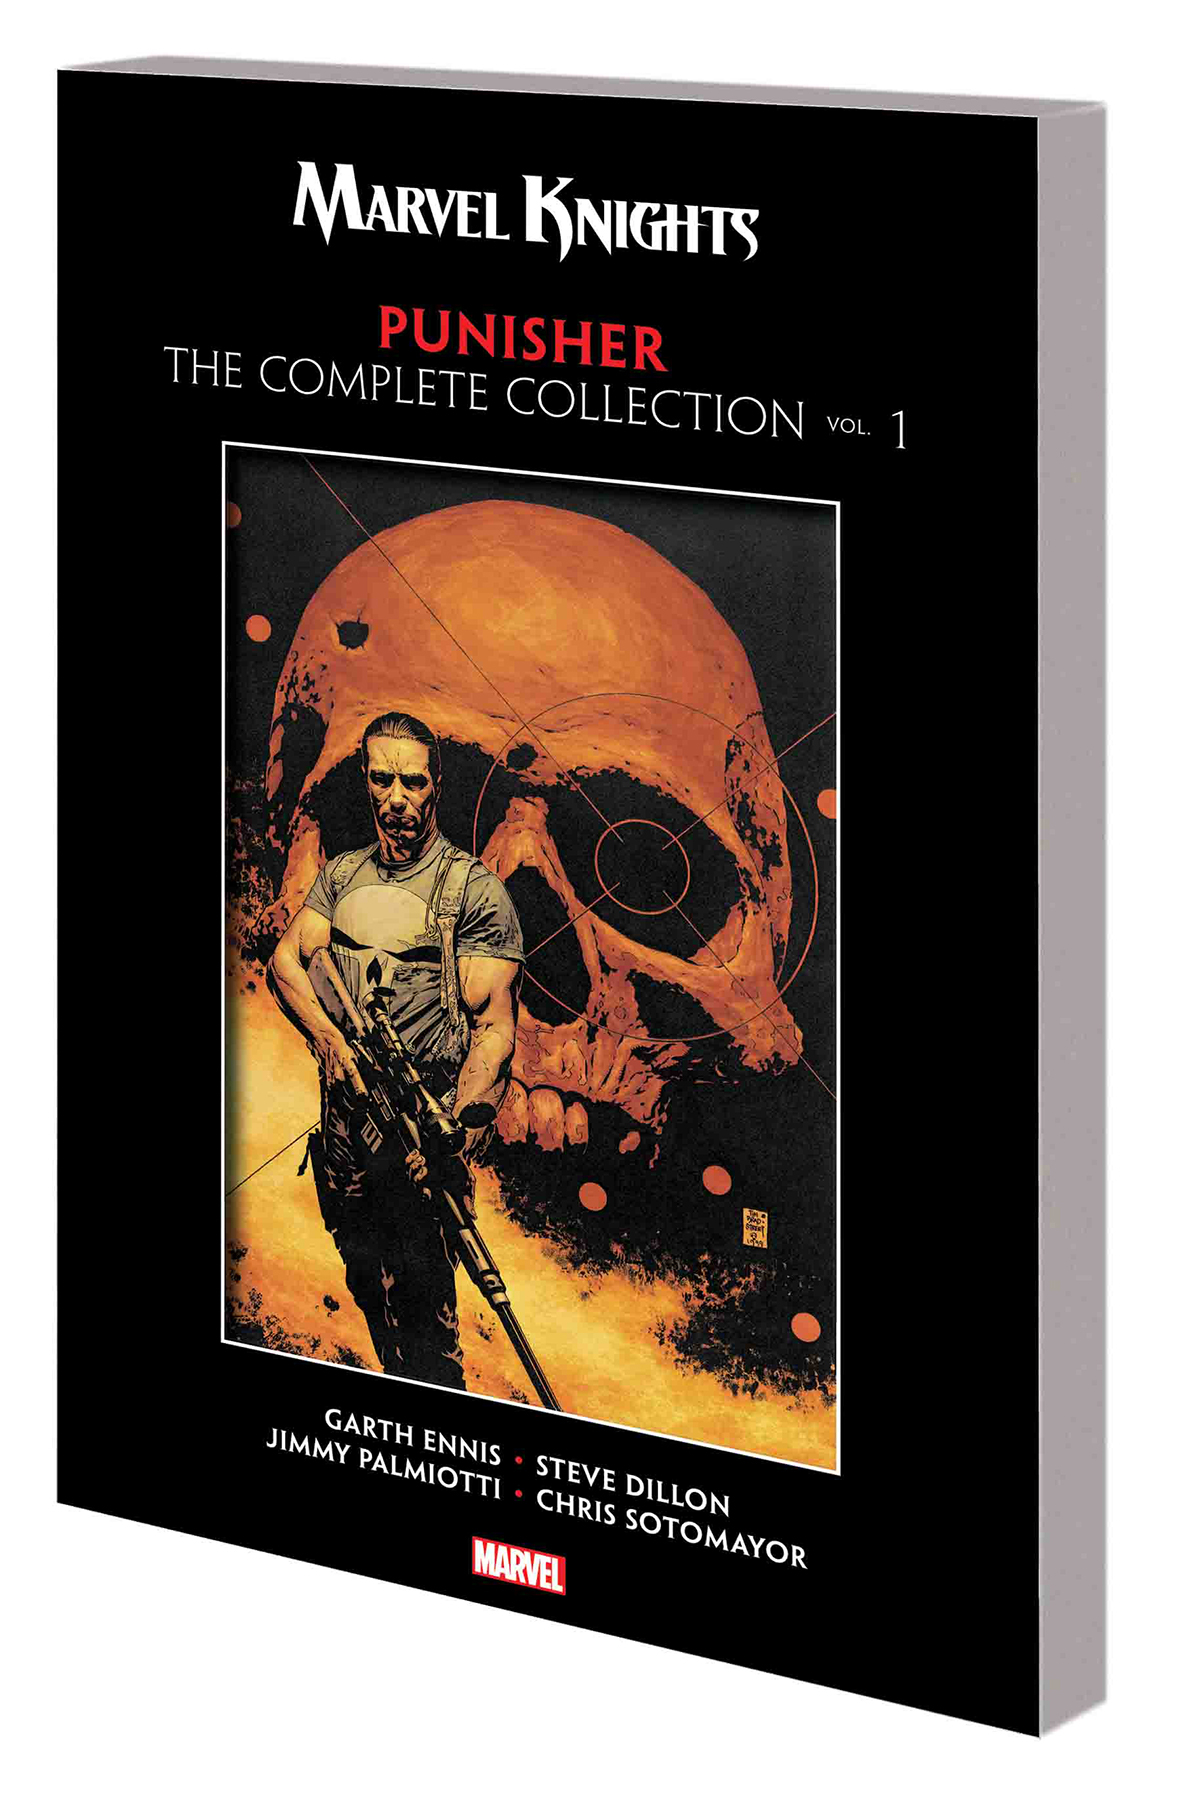 MARVEL KNIGHTS PUNISHER BY ENNIS COMPLETE COLLECTION TP VOL